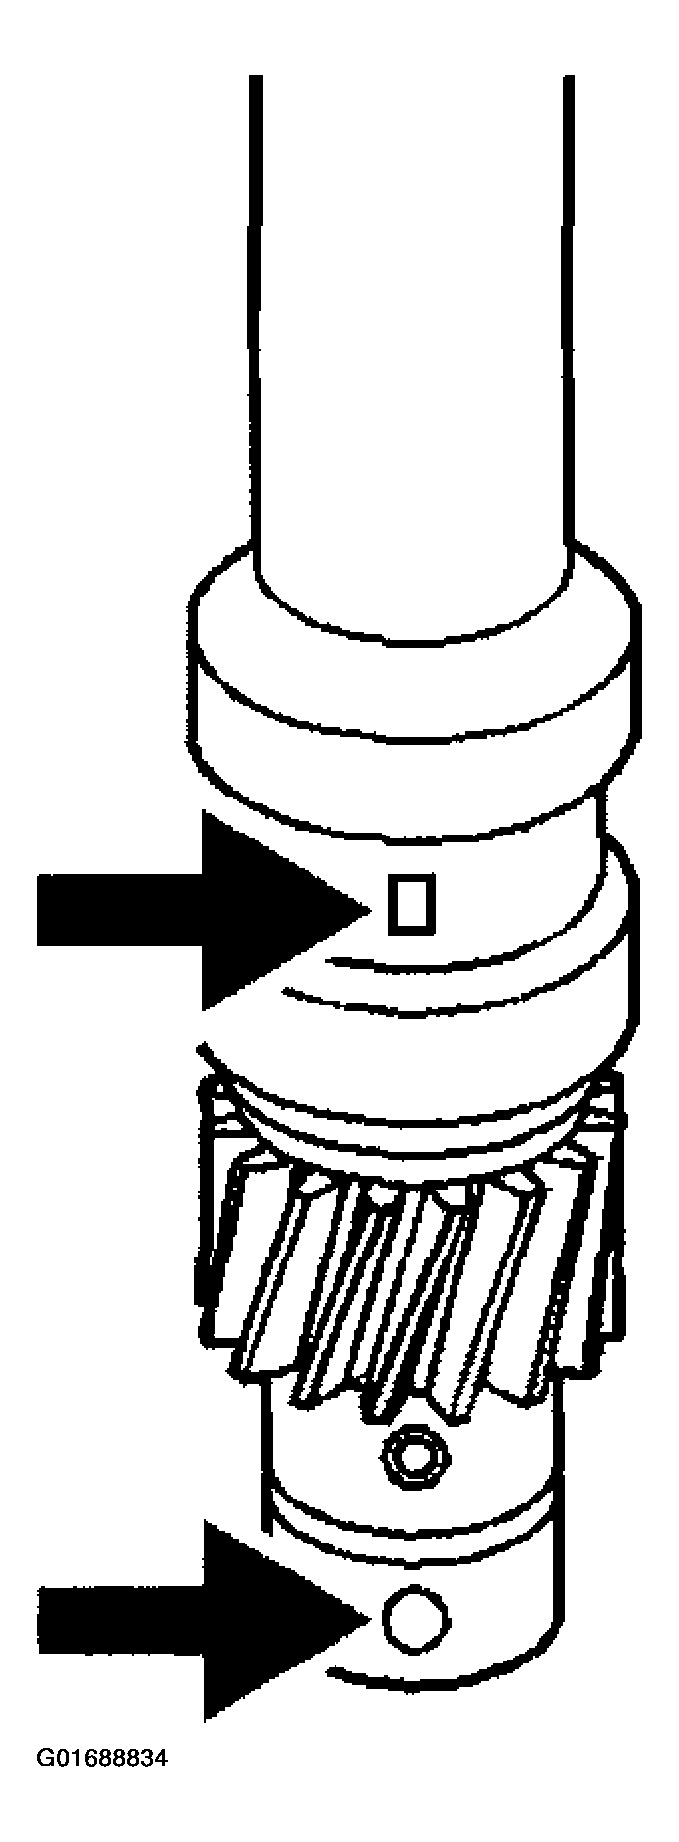 2000 acura integra spark plug wire diagram